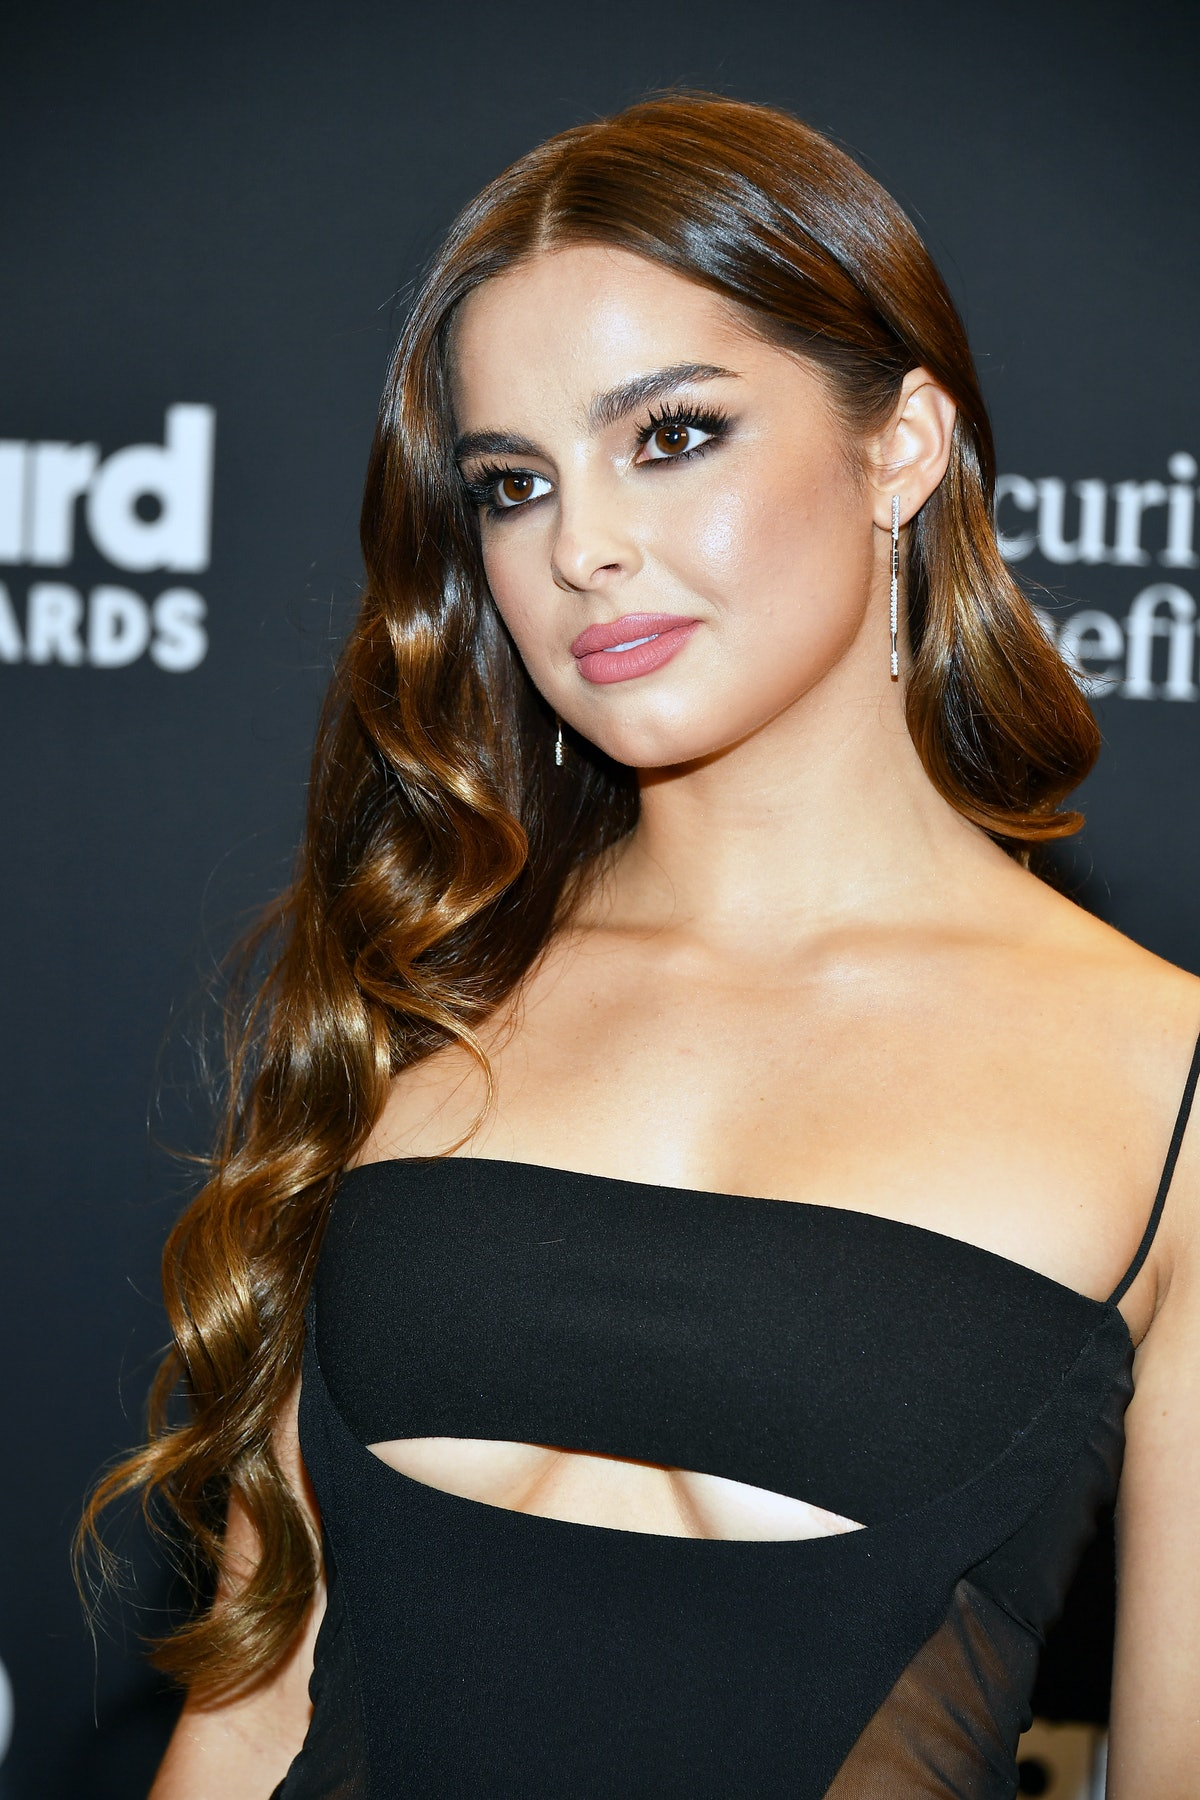 Addison Rae attends the Billboard Music Awards.